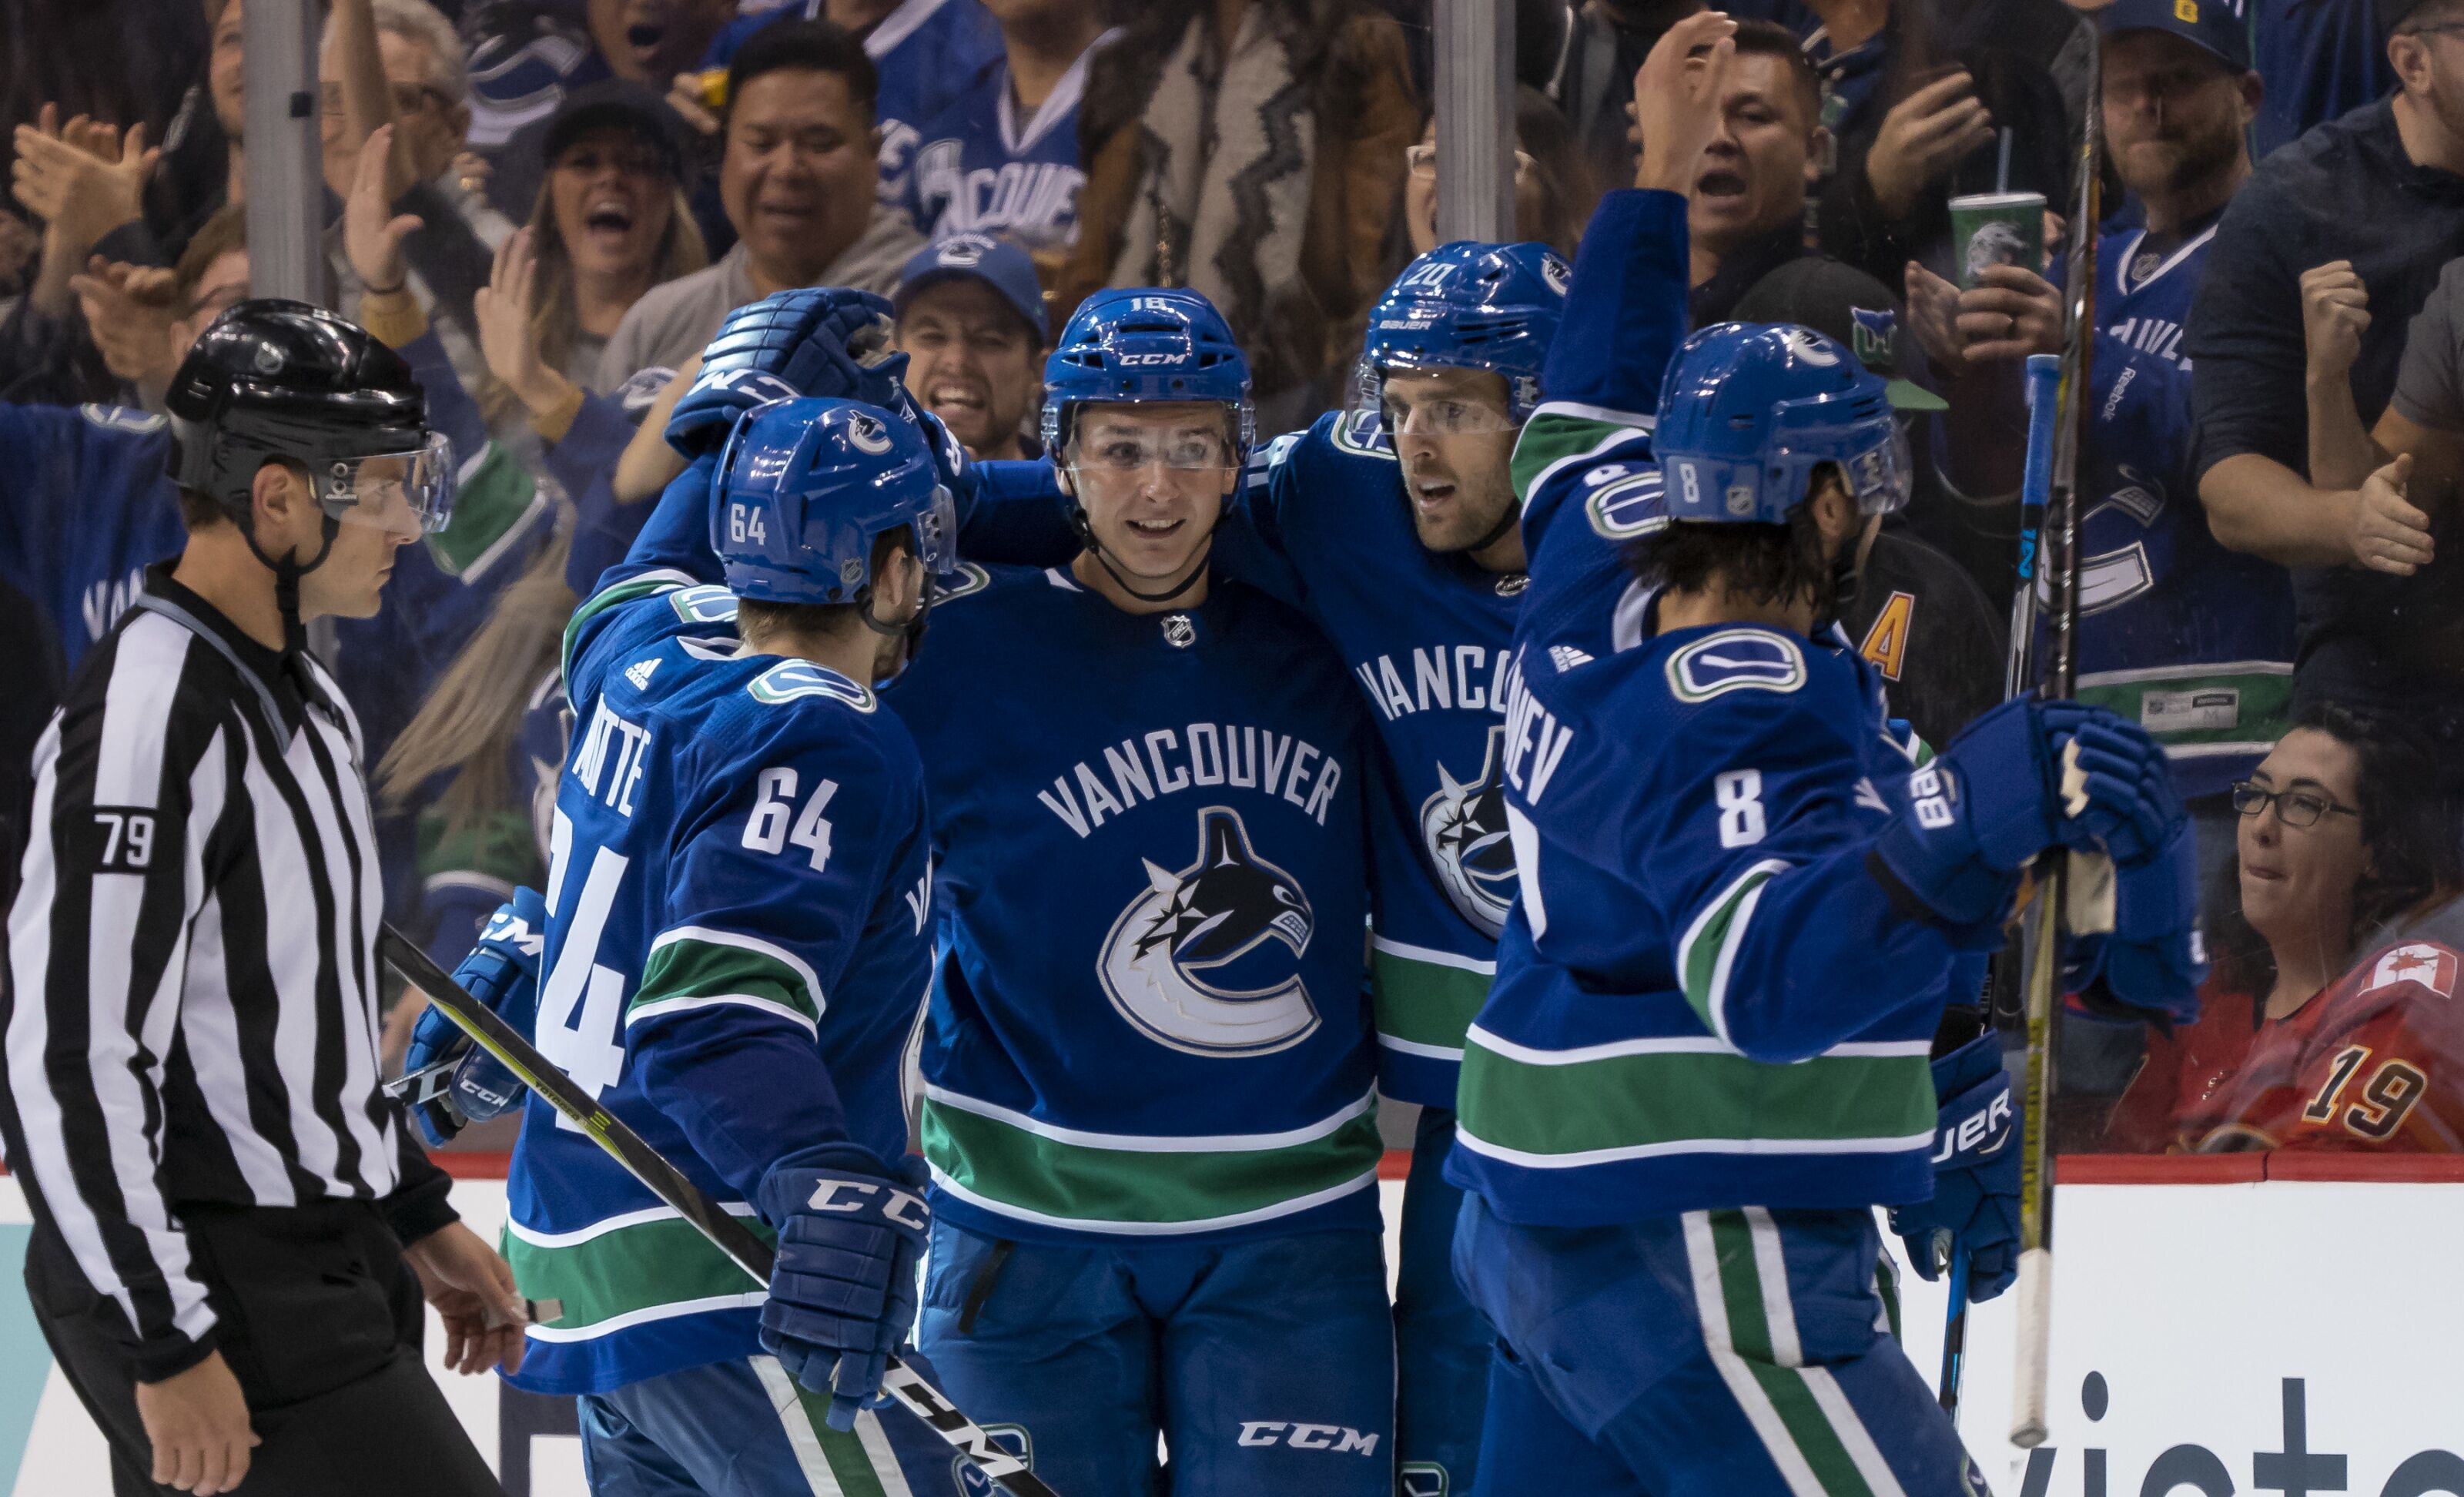 a344f56ab7996 Vancouver Canucks  Where they sit in power rankings after week 2